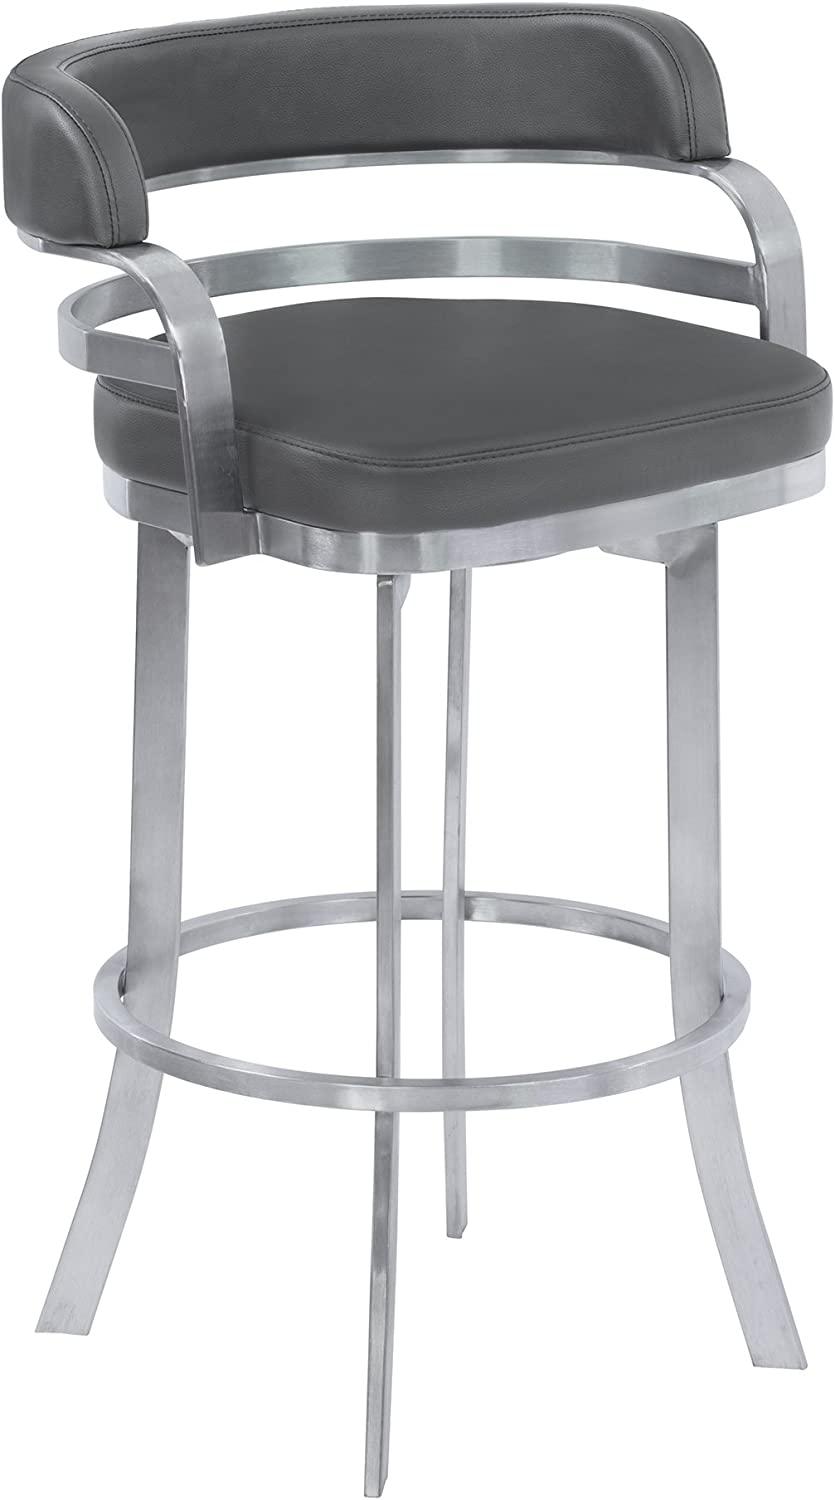 Armen Living Prinz 30 Bar Height Swivel Barstool in Grey Faux Leather and Brushed Stainless Steel Finish